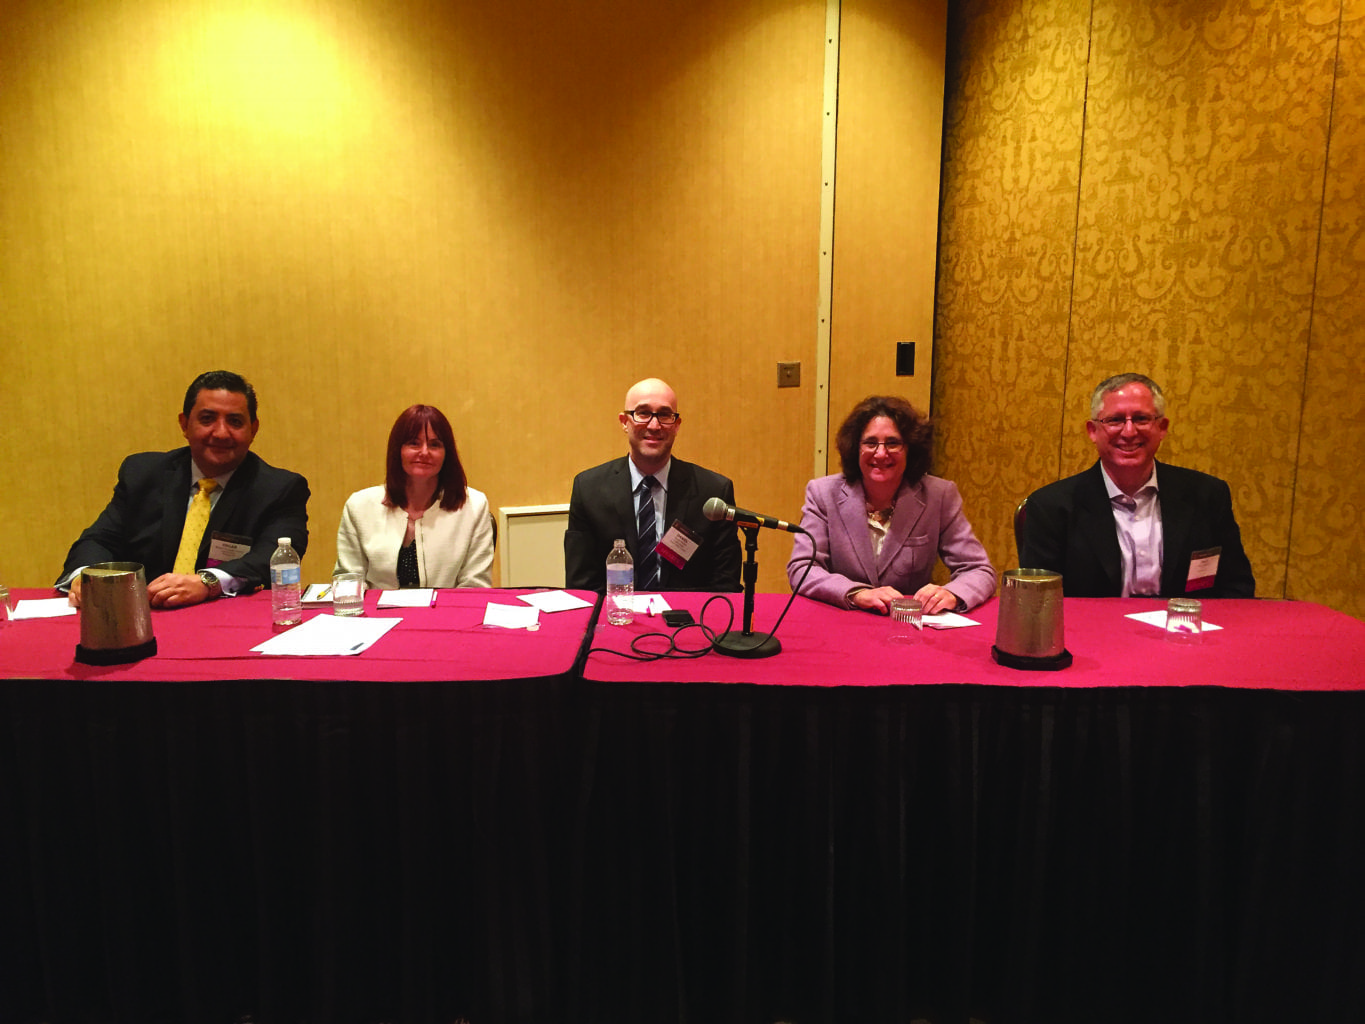 Panel discussions enabled participants to gain additional insights.